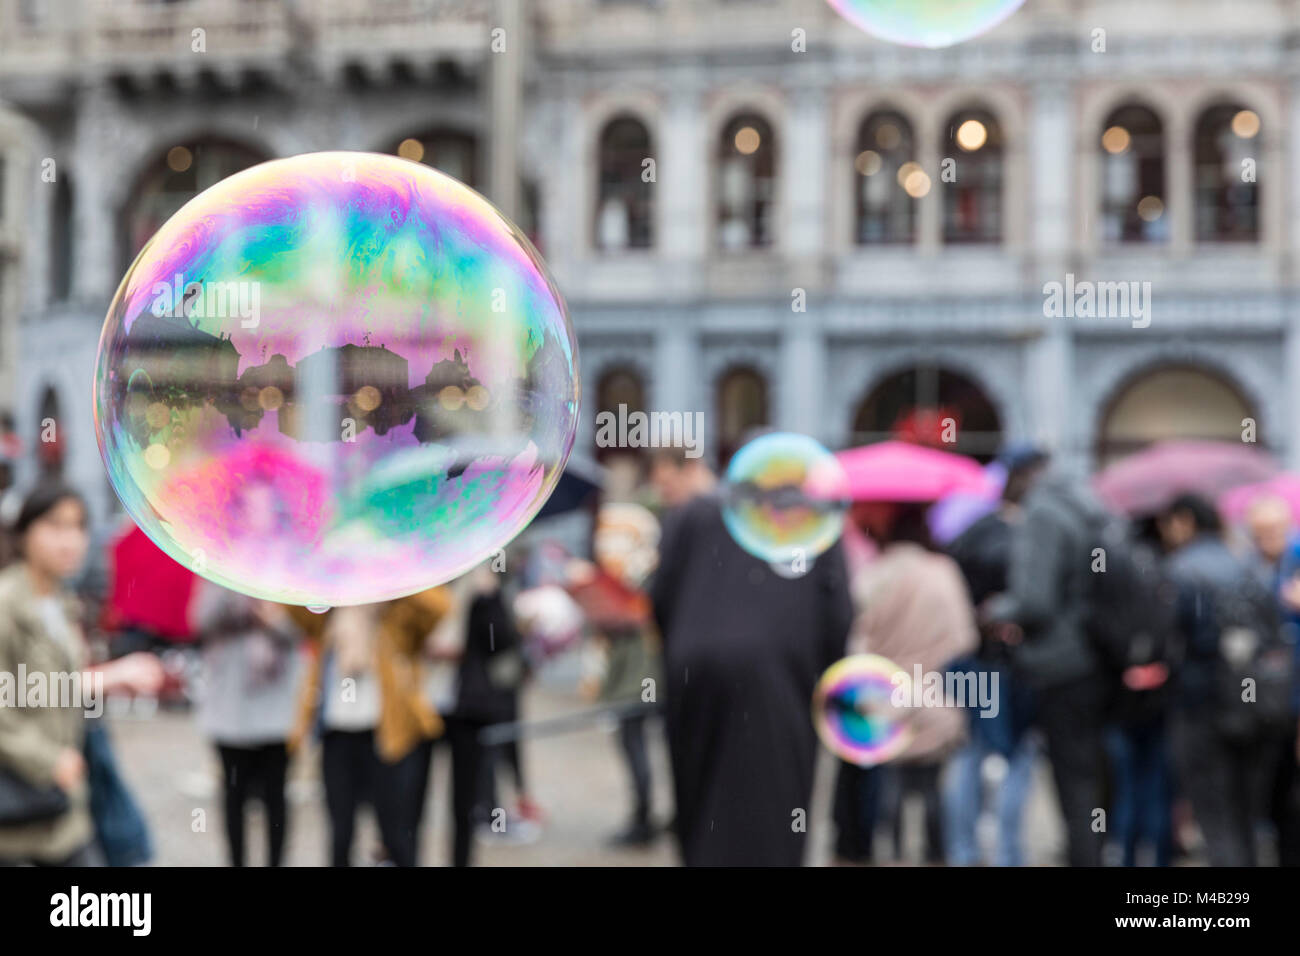 The Netherlands,Holland,Amsterdam,Dam,bursting bubble with reflexion - Stock Image